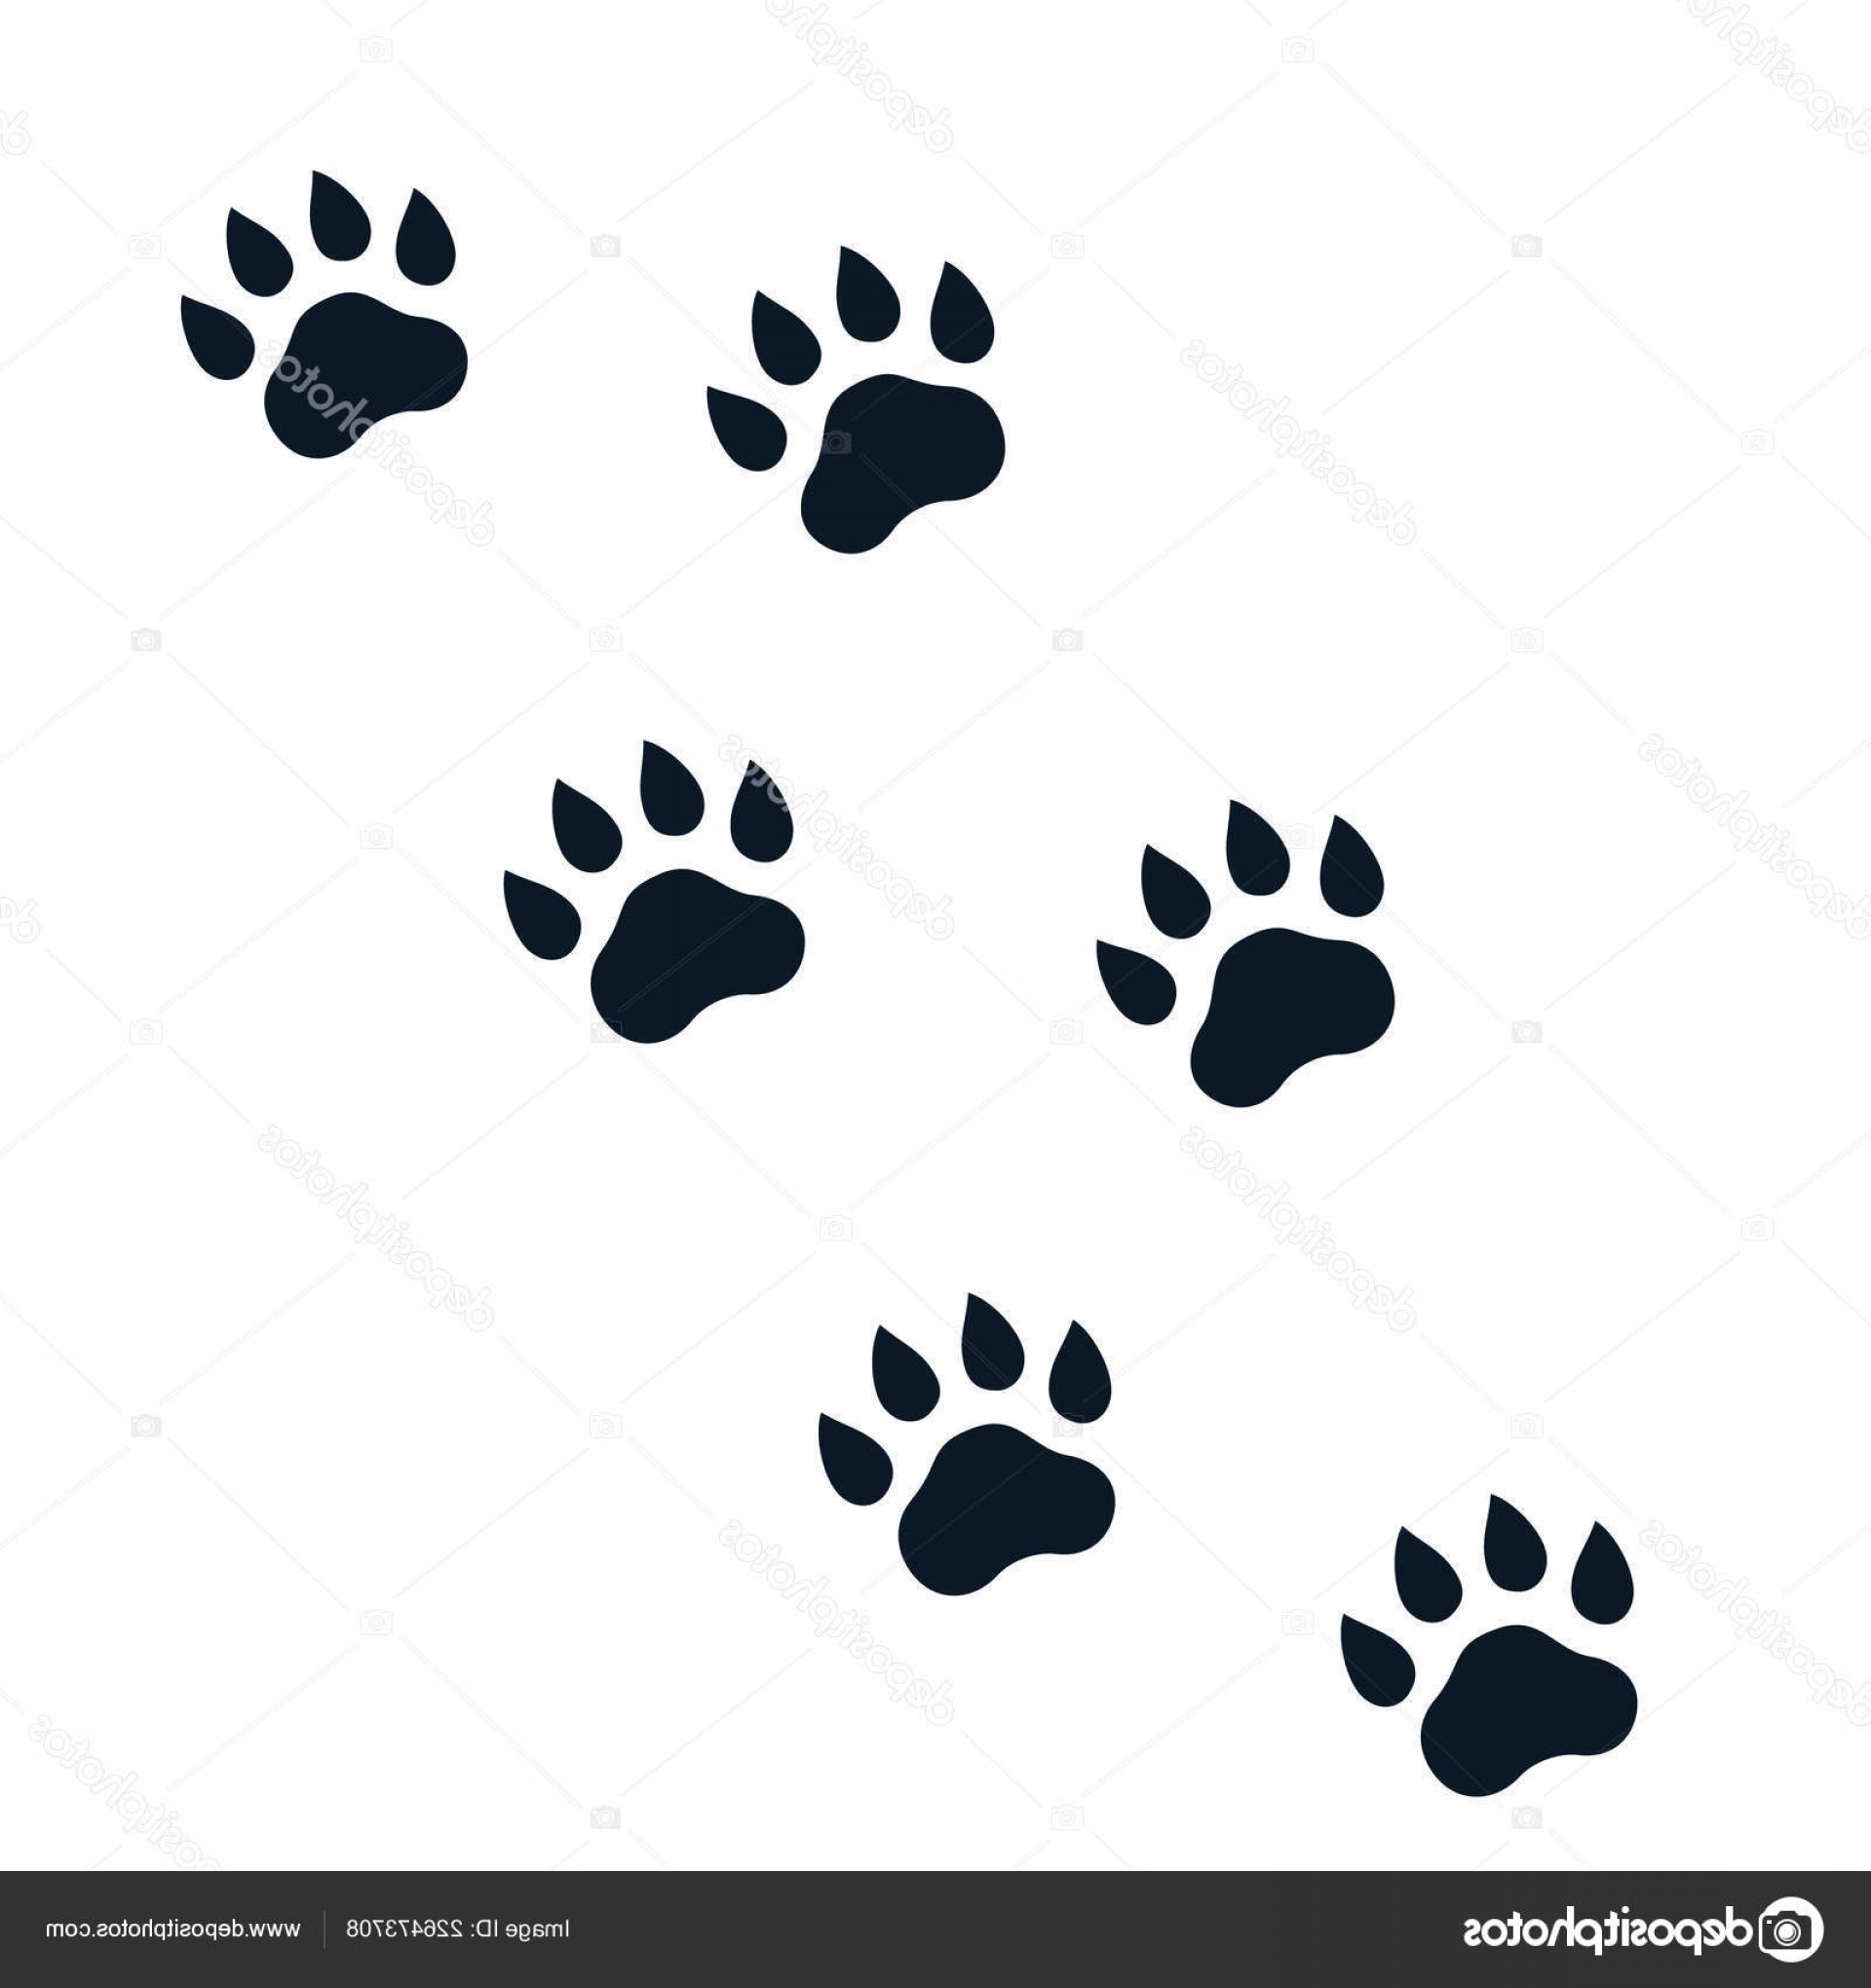 Footprint Vector EPS: Stock Illustration Paw Footprints On White Vector